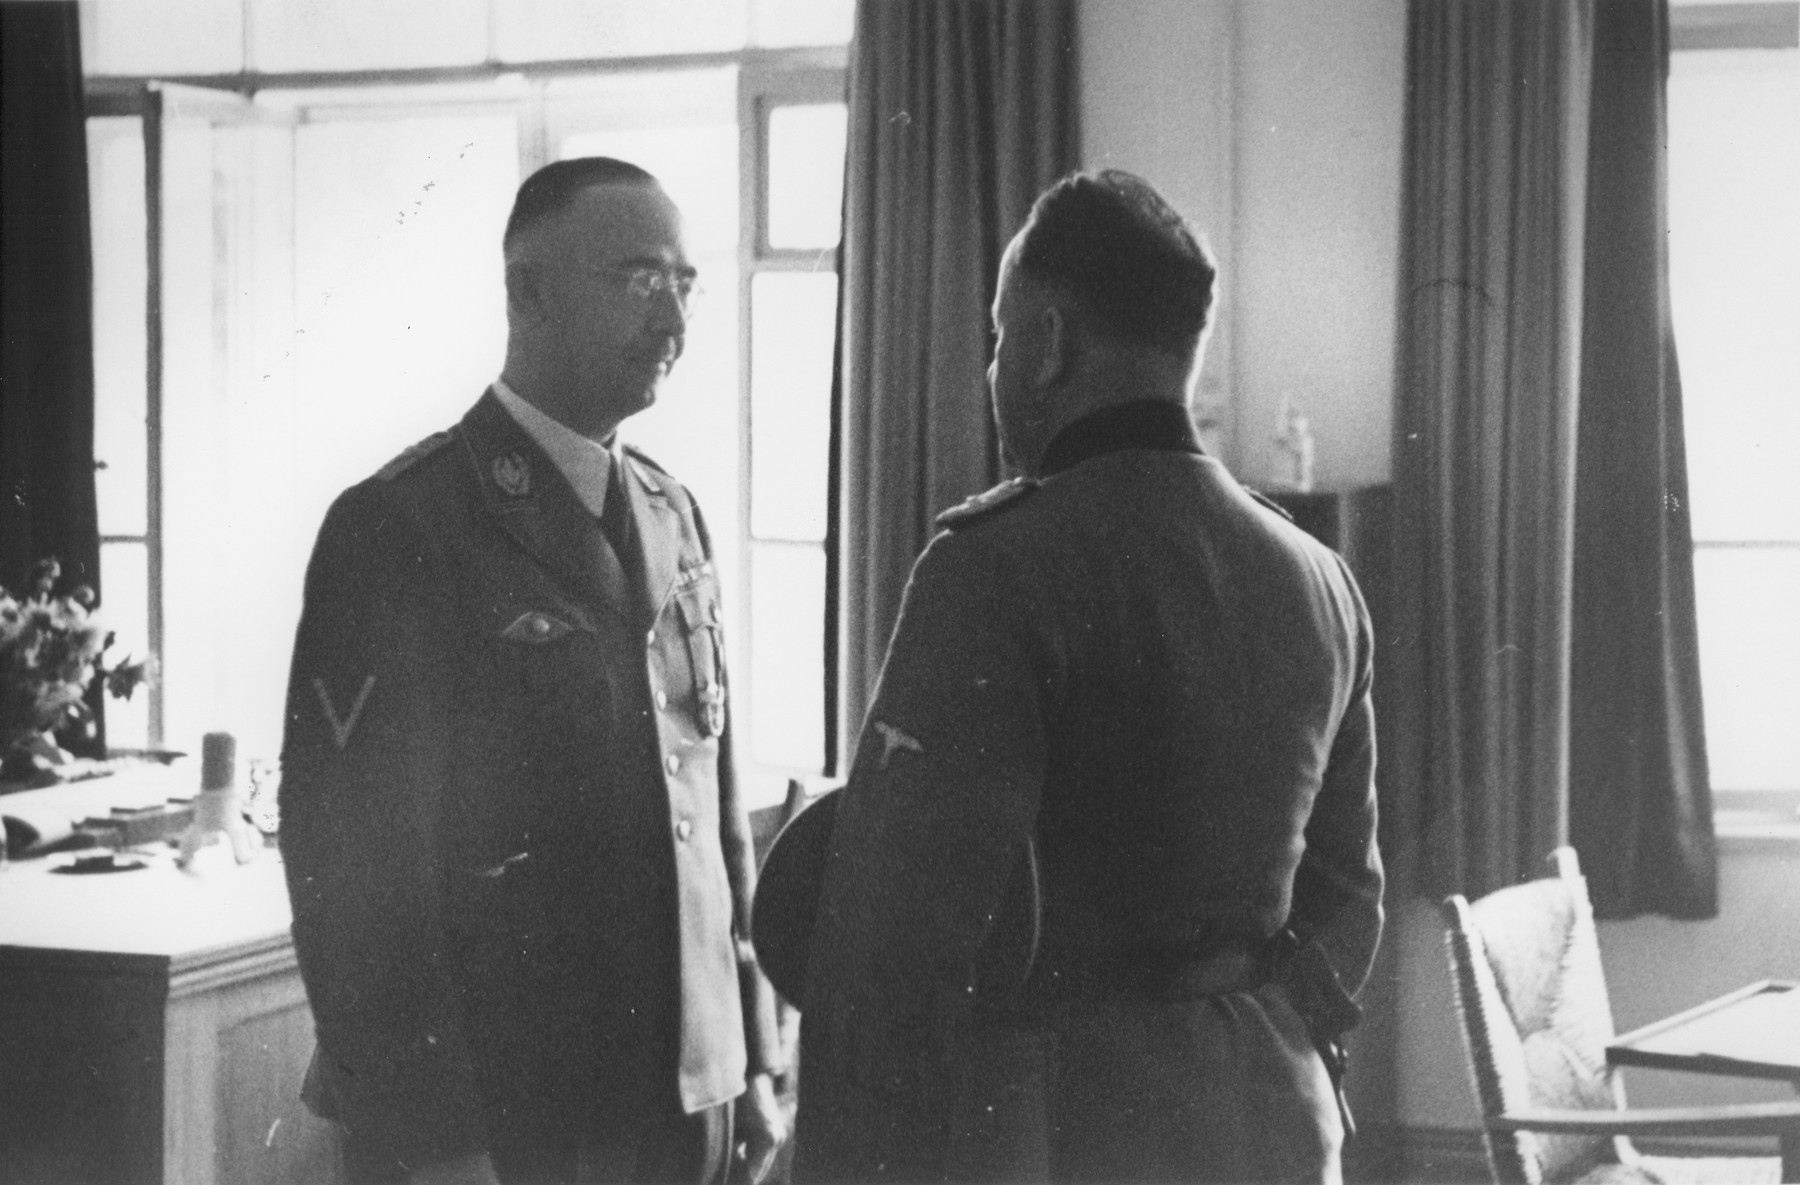 SS-Reichsfuehrer Heinrich Himmler confers with an unknown person in his office at SS headquarters in the Hegewald bei Zhitomir compound.